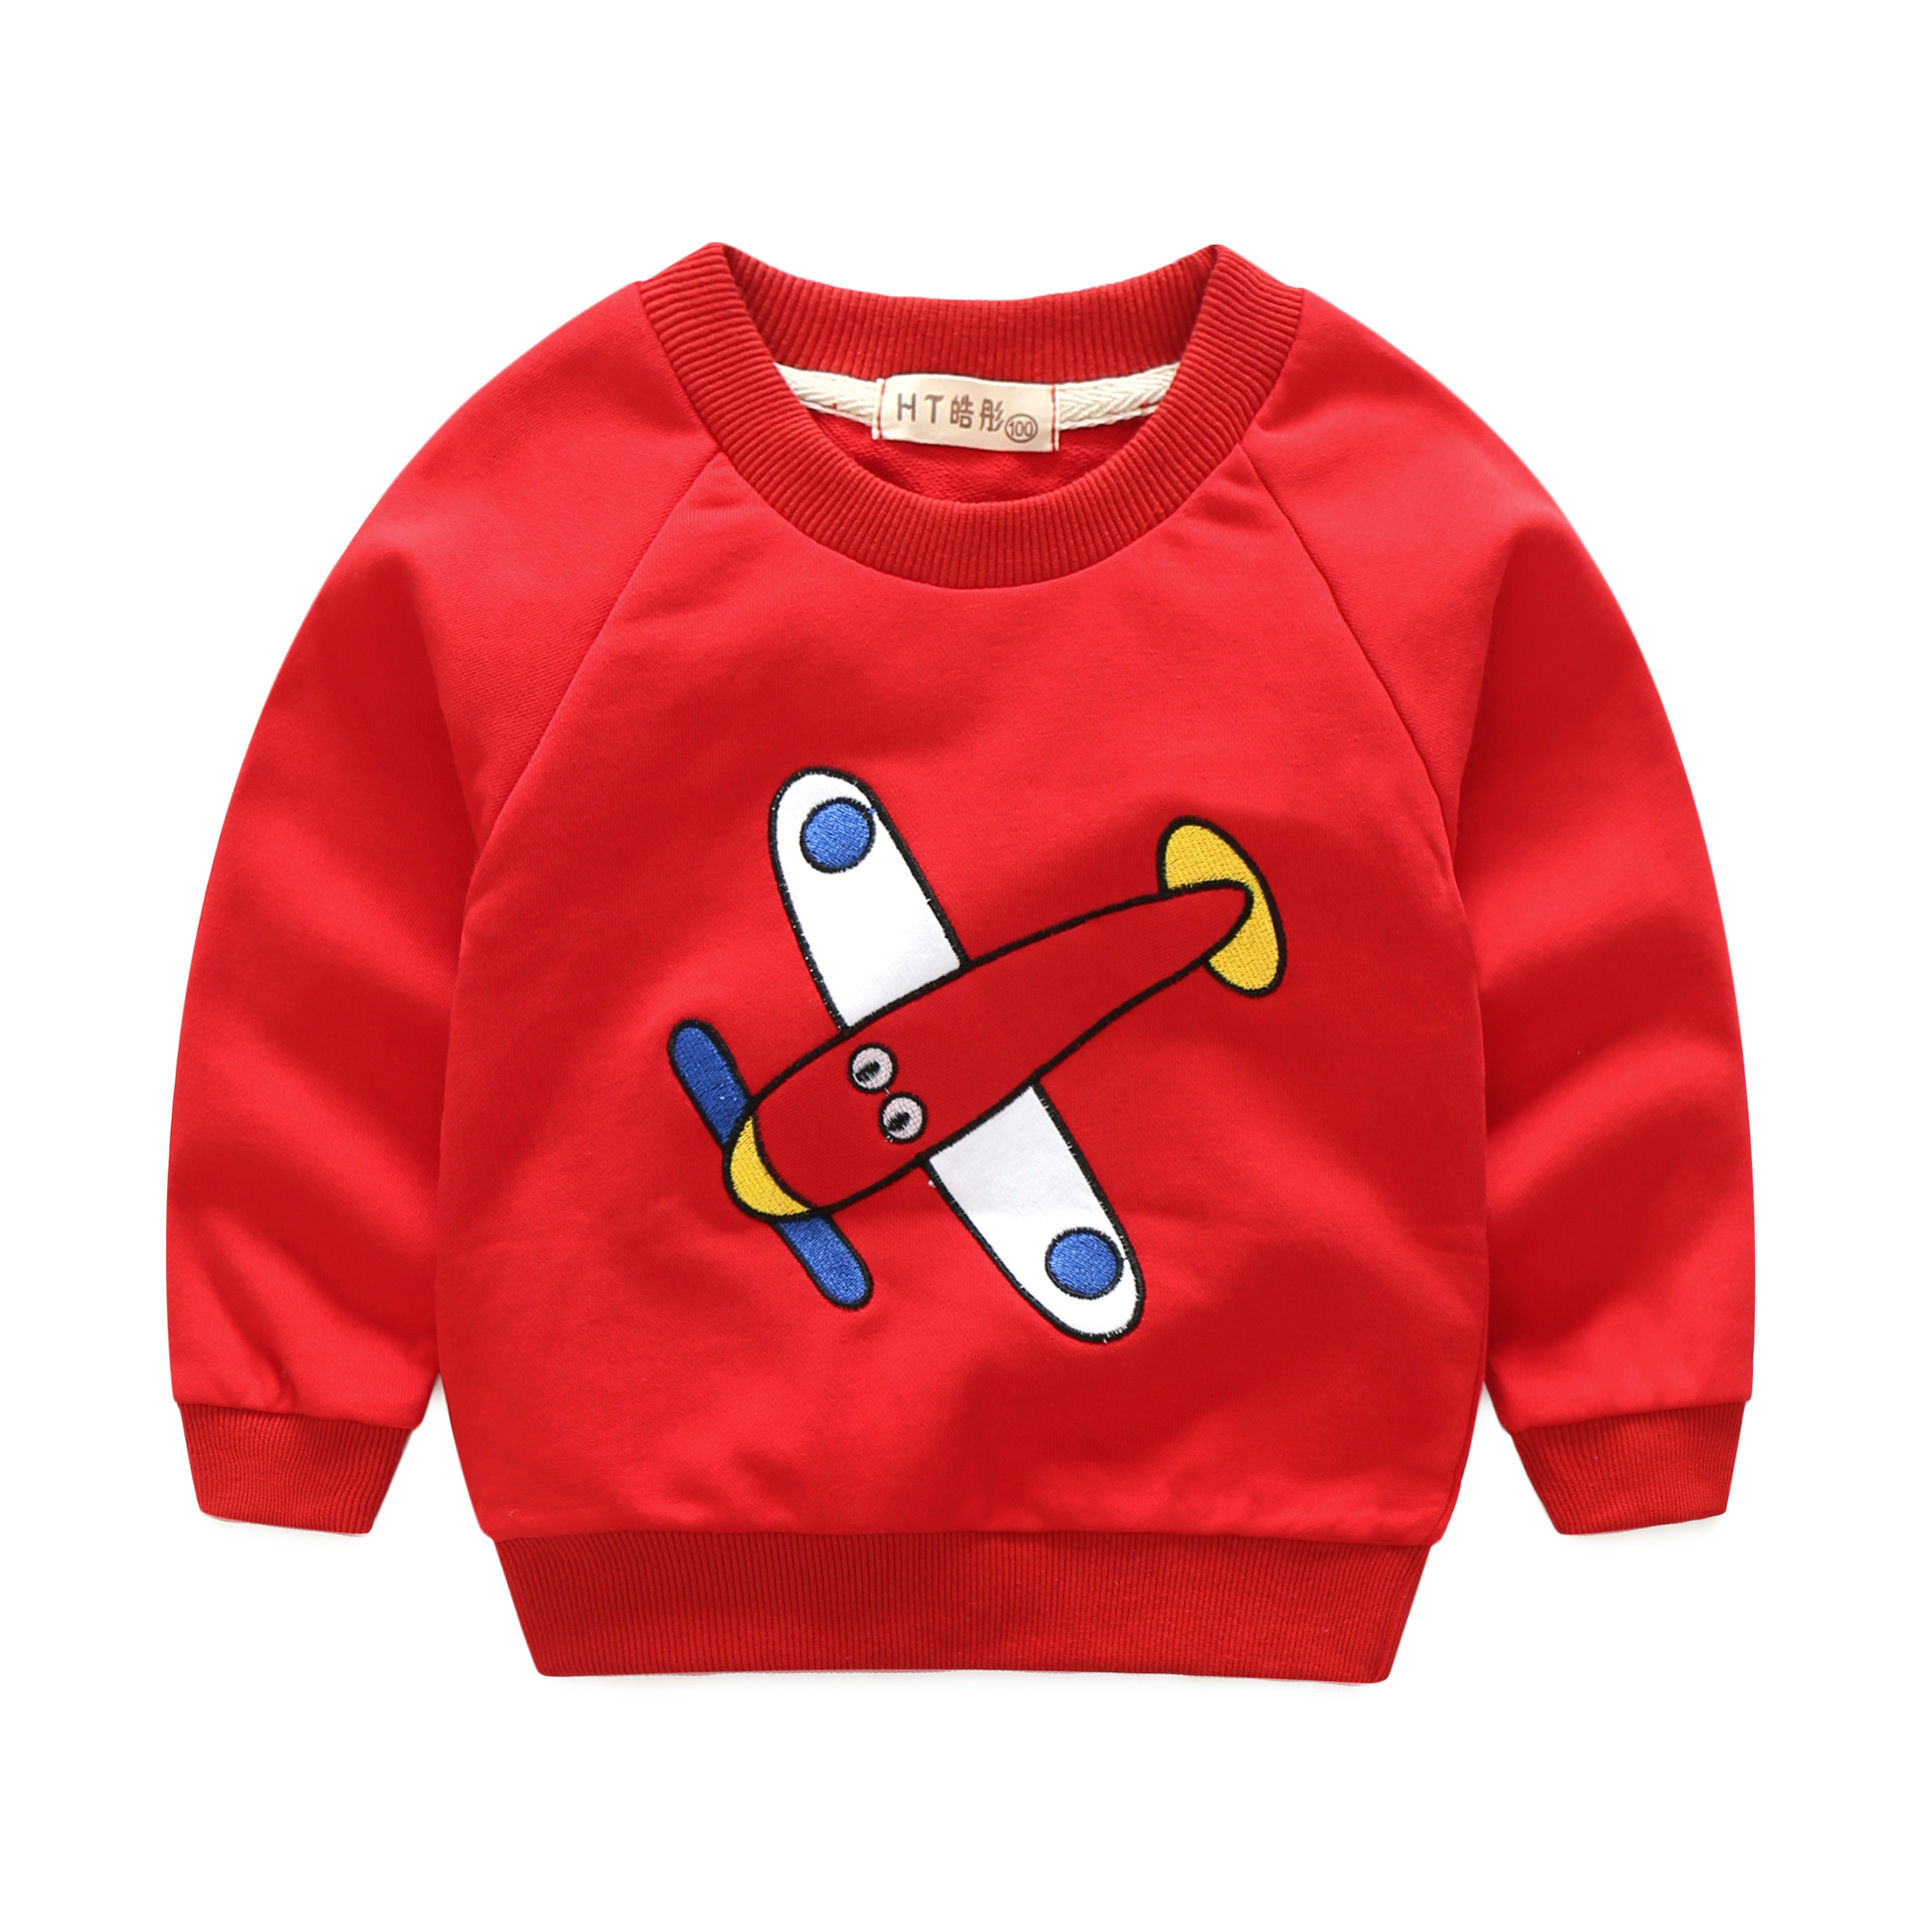 Mioigee 2018 Toddler Baby Boys Clothes Spring Long Sleeve Tops Sweater Kids Hoodies Sweatshirts Children Autumn Casual Costume